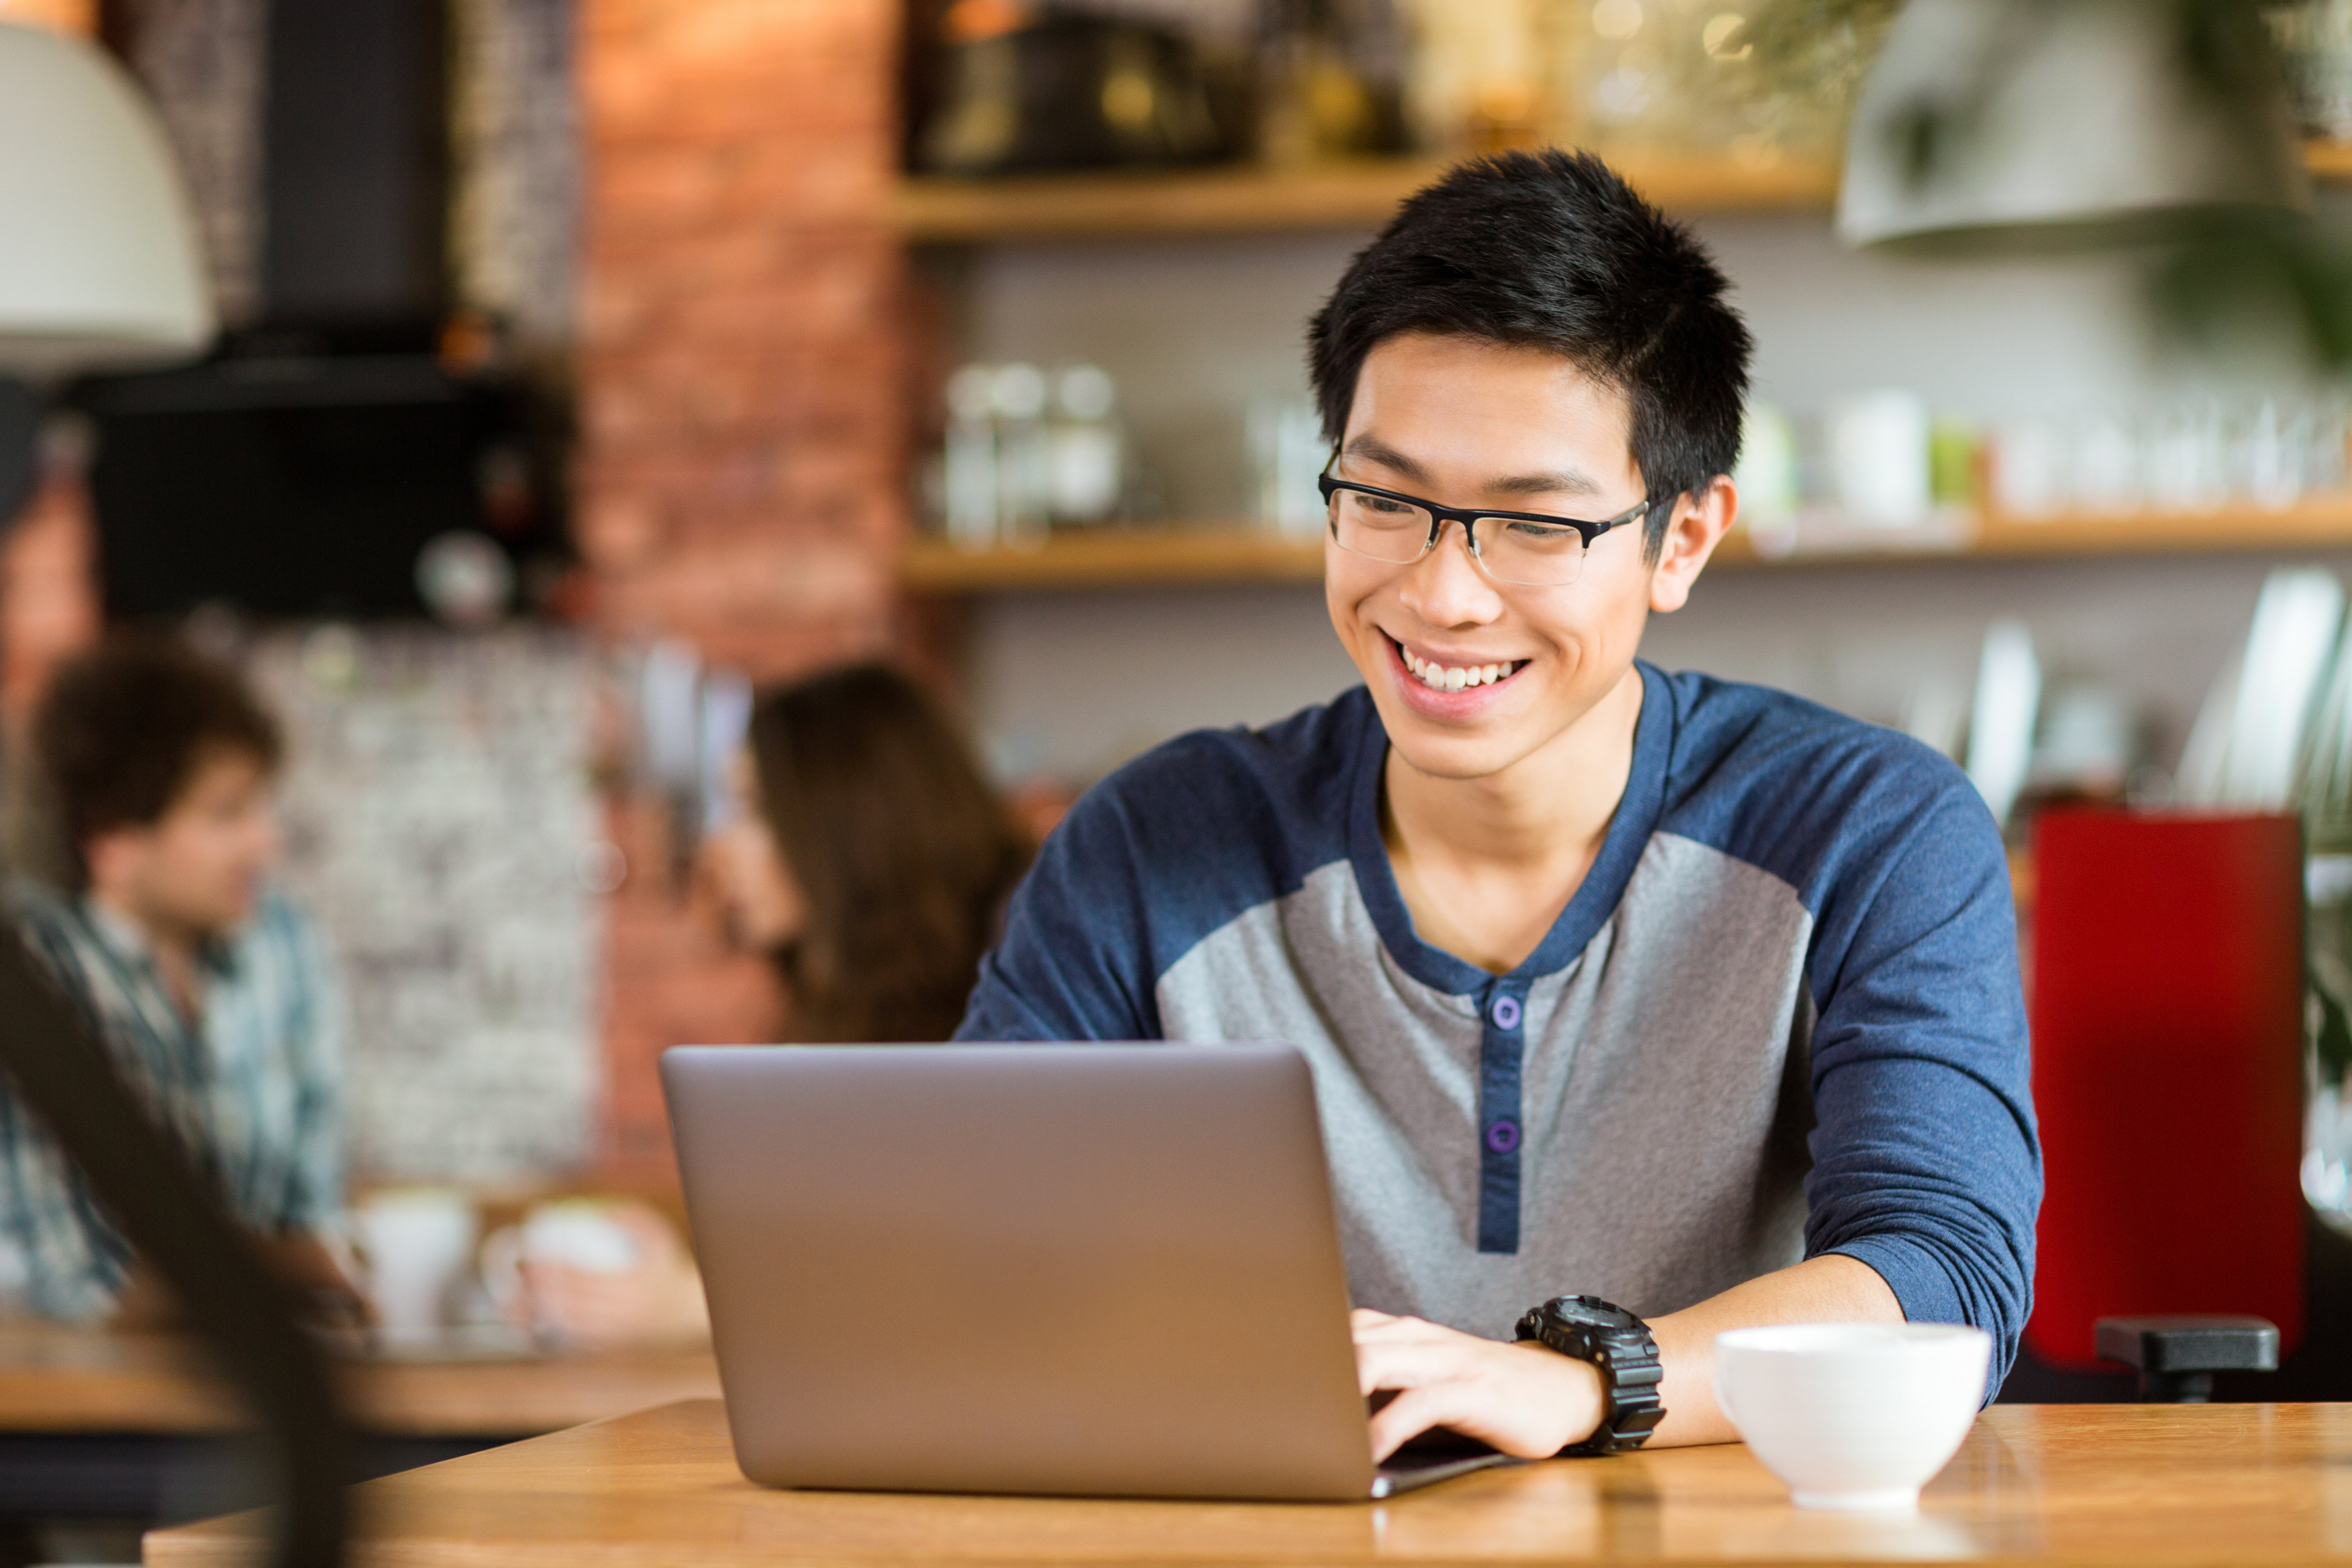 Happy cheerful young asian male in glasses smiling and using laptop in